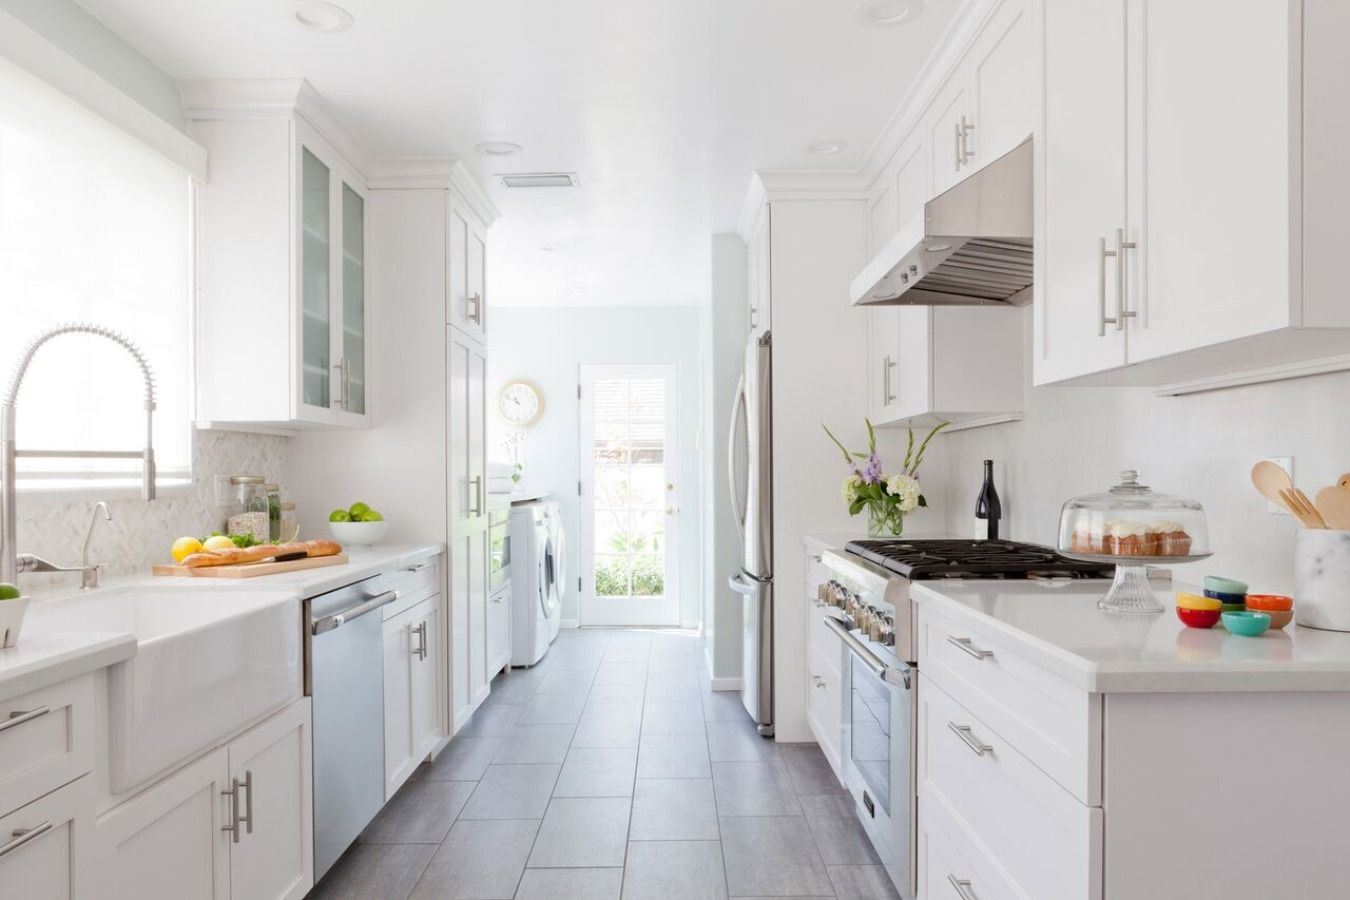 The Kitchens of Our Thanksgiving Dreams | Galley kitchens ...